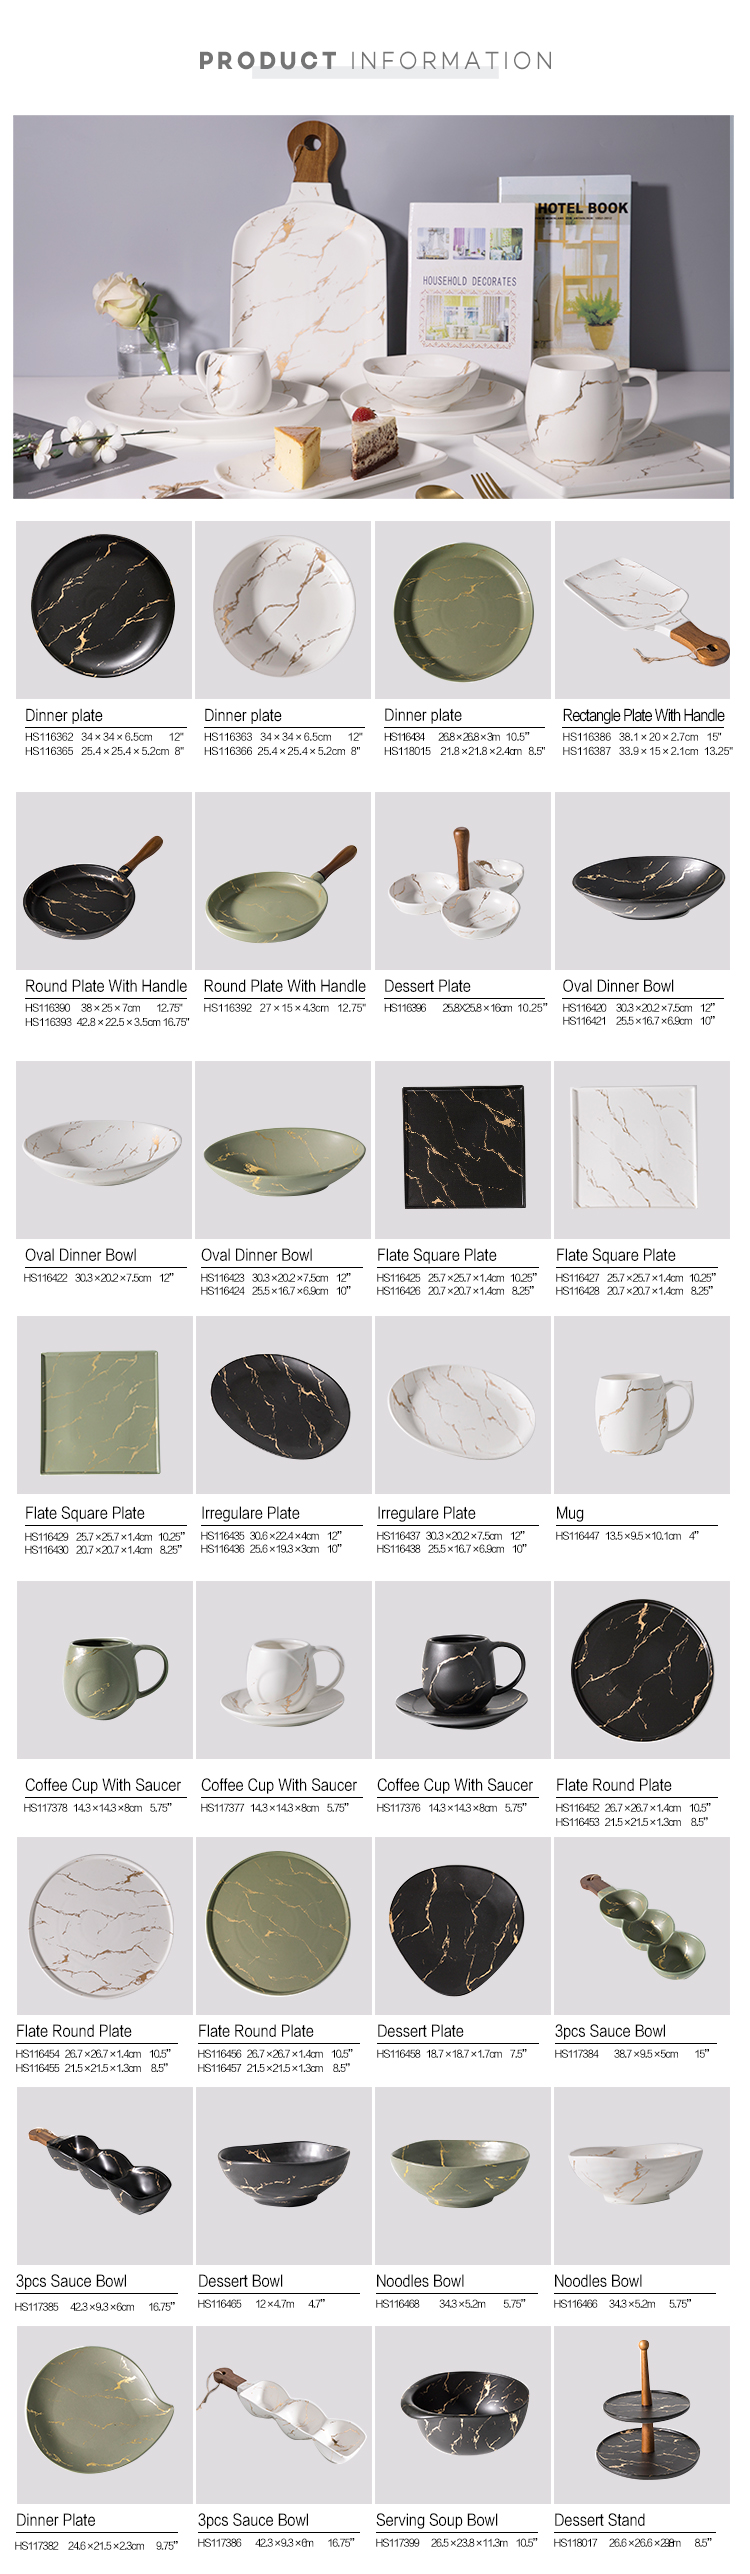 Wholesale Distributor Supplies Marble Tableware Dinnerware, Dishwasher Available Distributor Supplies Embossed Dinnerware Set!